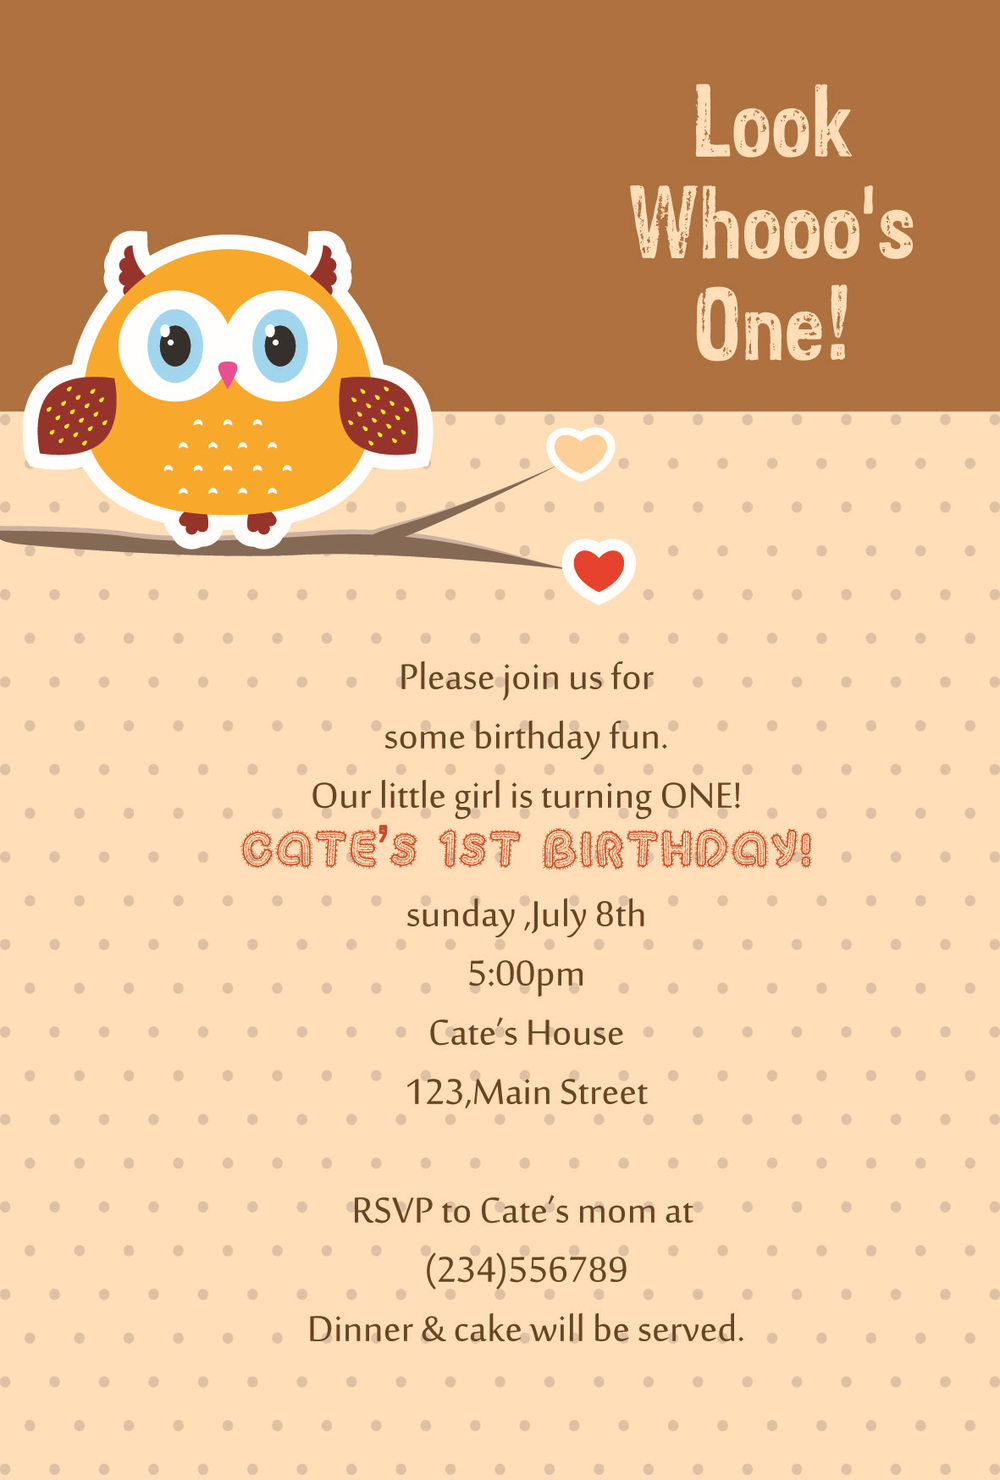 kids birthday invitation cards - Etame.mibawa.co